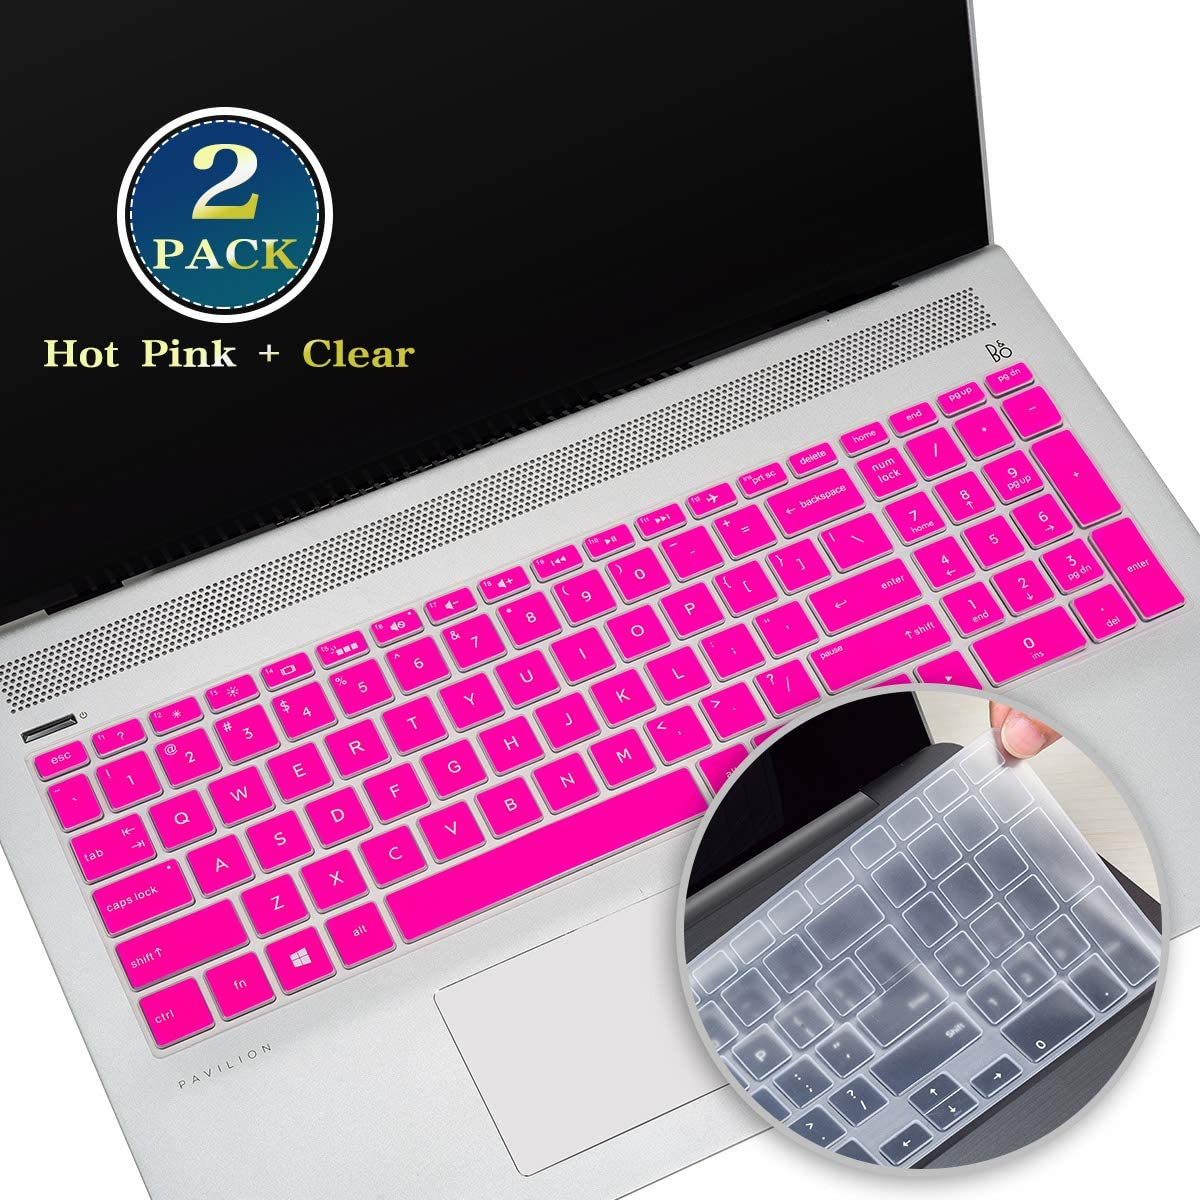 2 Pack Keyboard Cover Skin for HP Pavilion x360 15.6 Inch 2019 2020, HP Envy x360 15.6 Laptop,HP Envy 15t Series, HP Spectre x360 15-ch, HP 15.6 Laptop Keyboard Protector(Hot Pink+Clear)